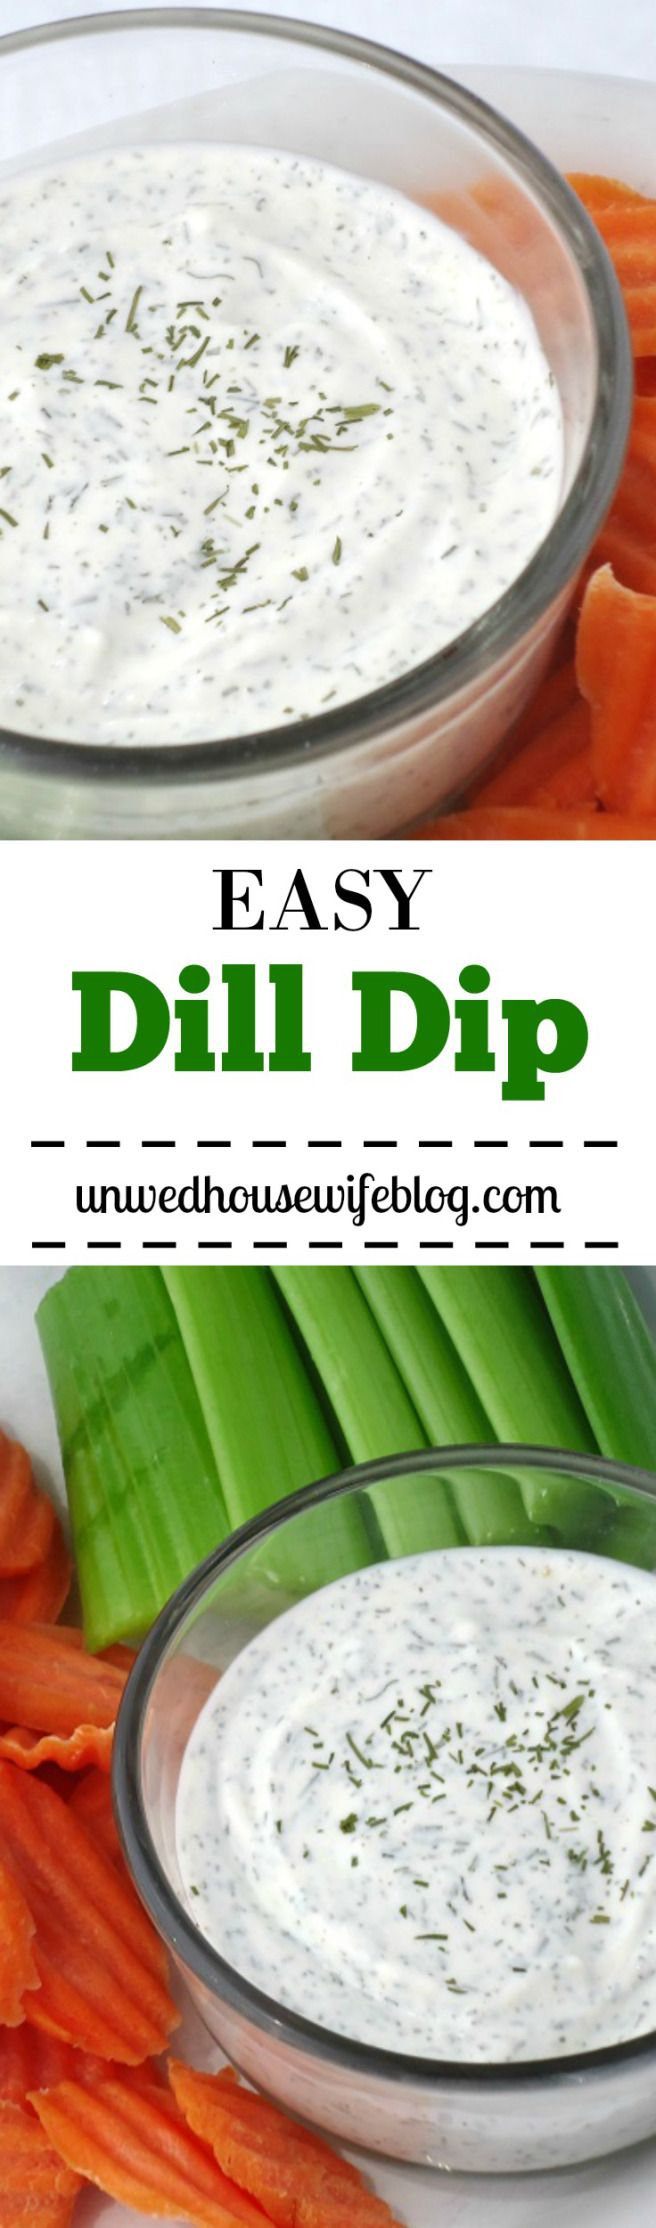 Easy Dill Dip Easy Homemade Dill Dip Recipe That S Perfect For Parties And Weekends Dip Your Favorite Raw Dill Dip Recipes Dill Dip Food Processor Recipes